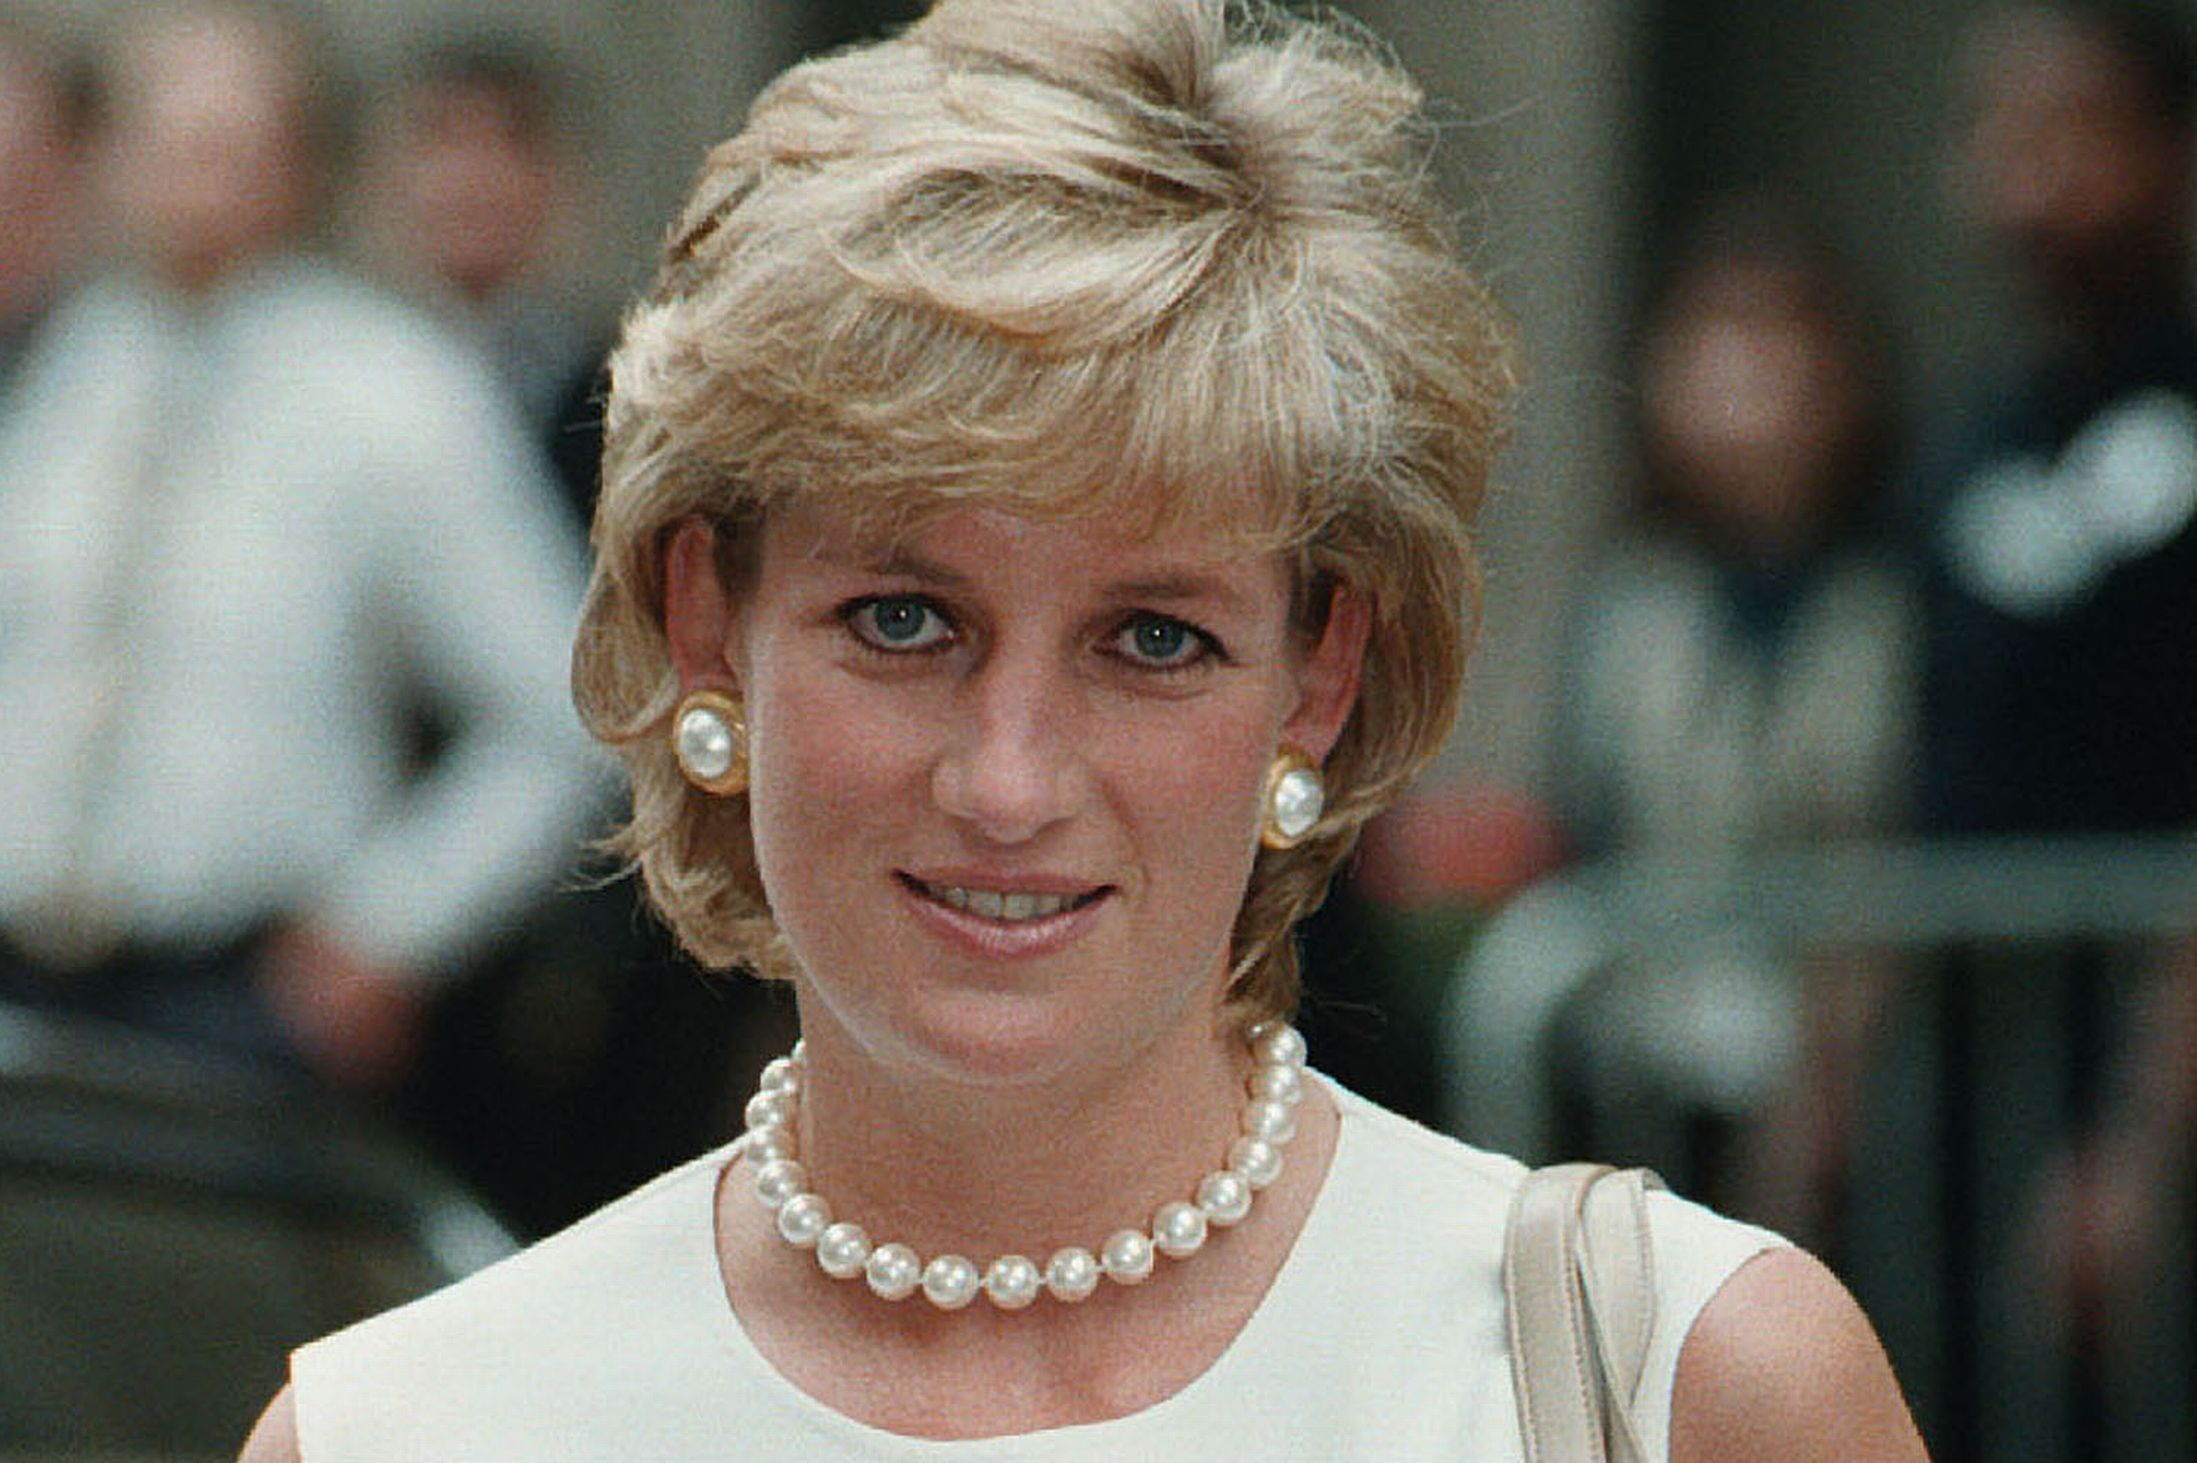 'Creepy' Trump's lust for Diana